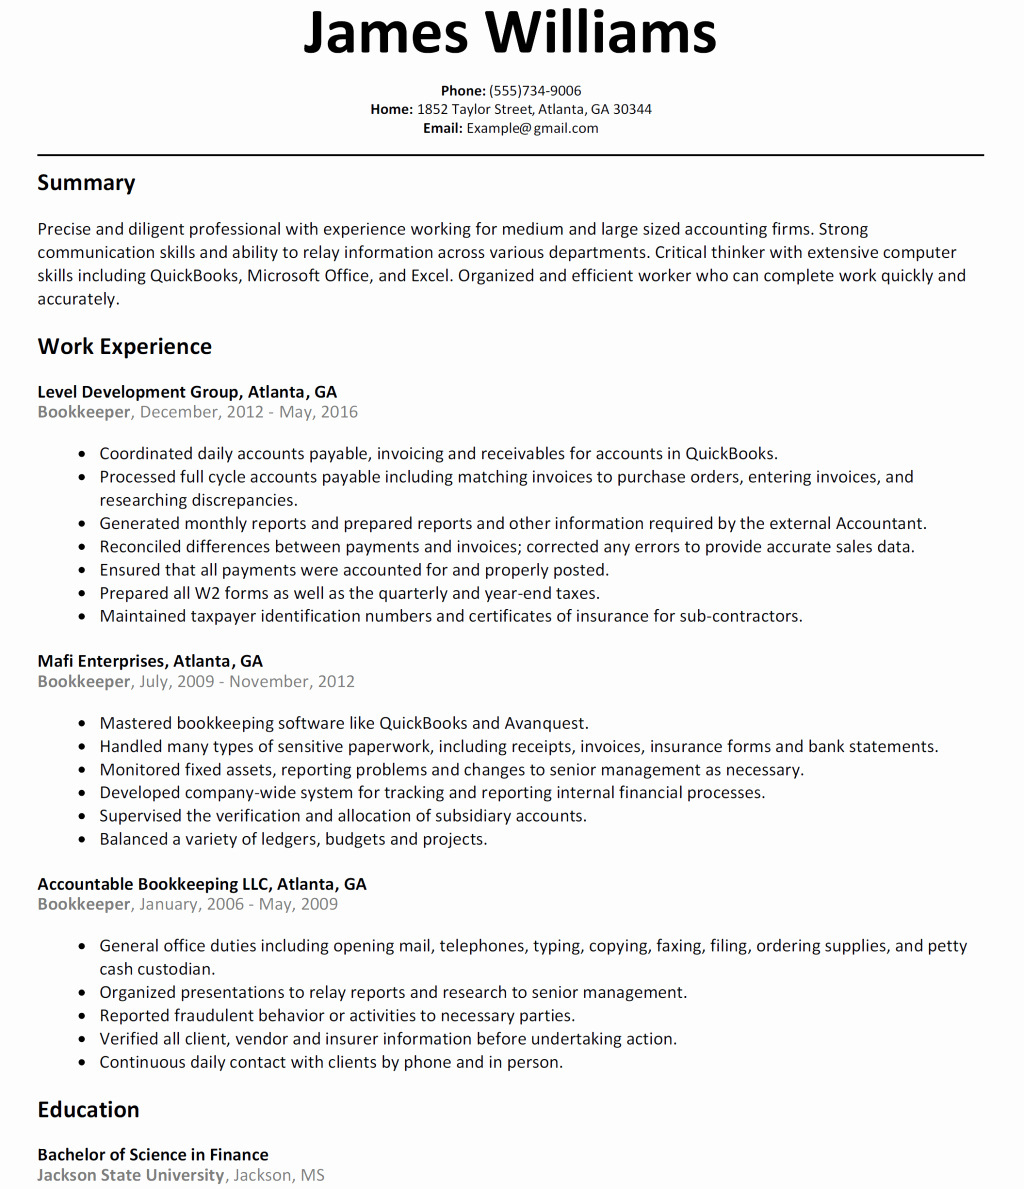 General Cover Letter Template - General Cover Letter for Resume Elegant Economic Development